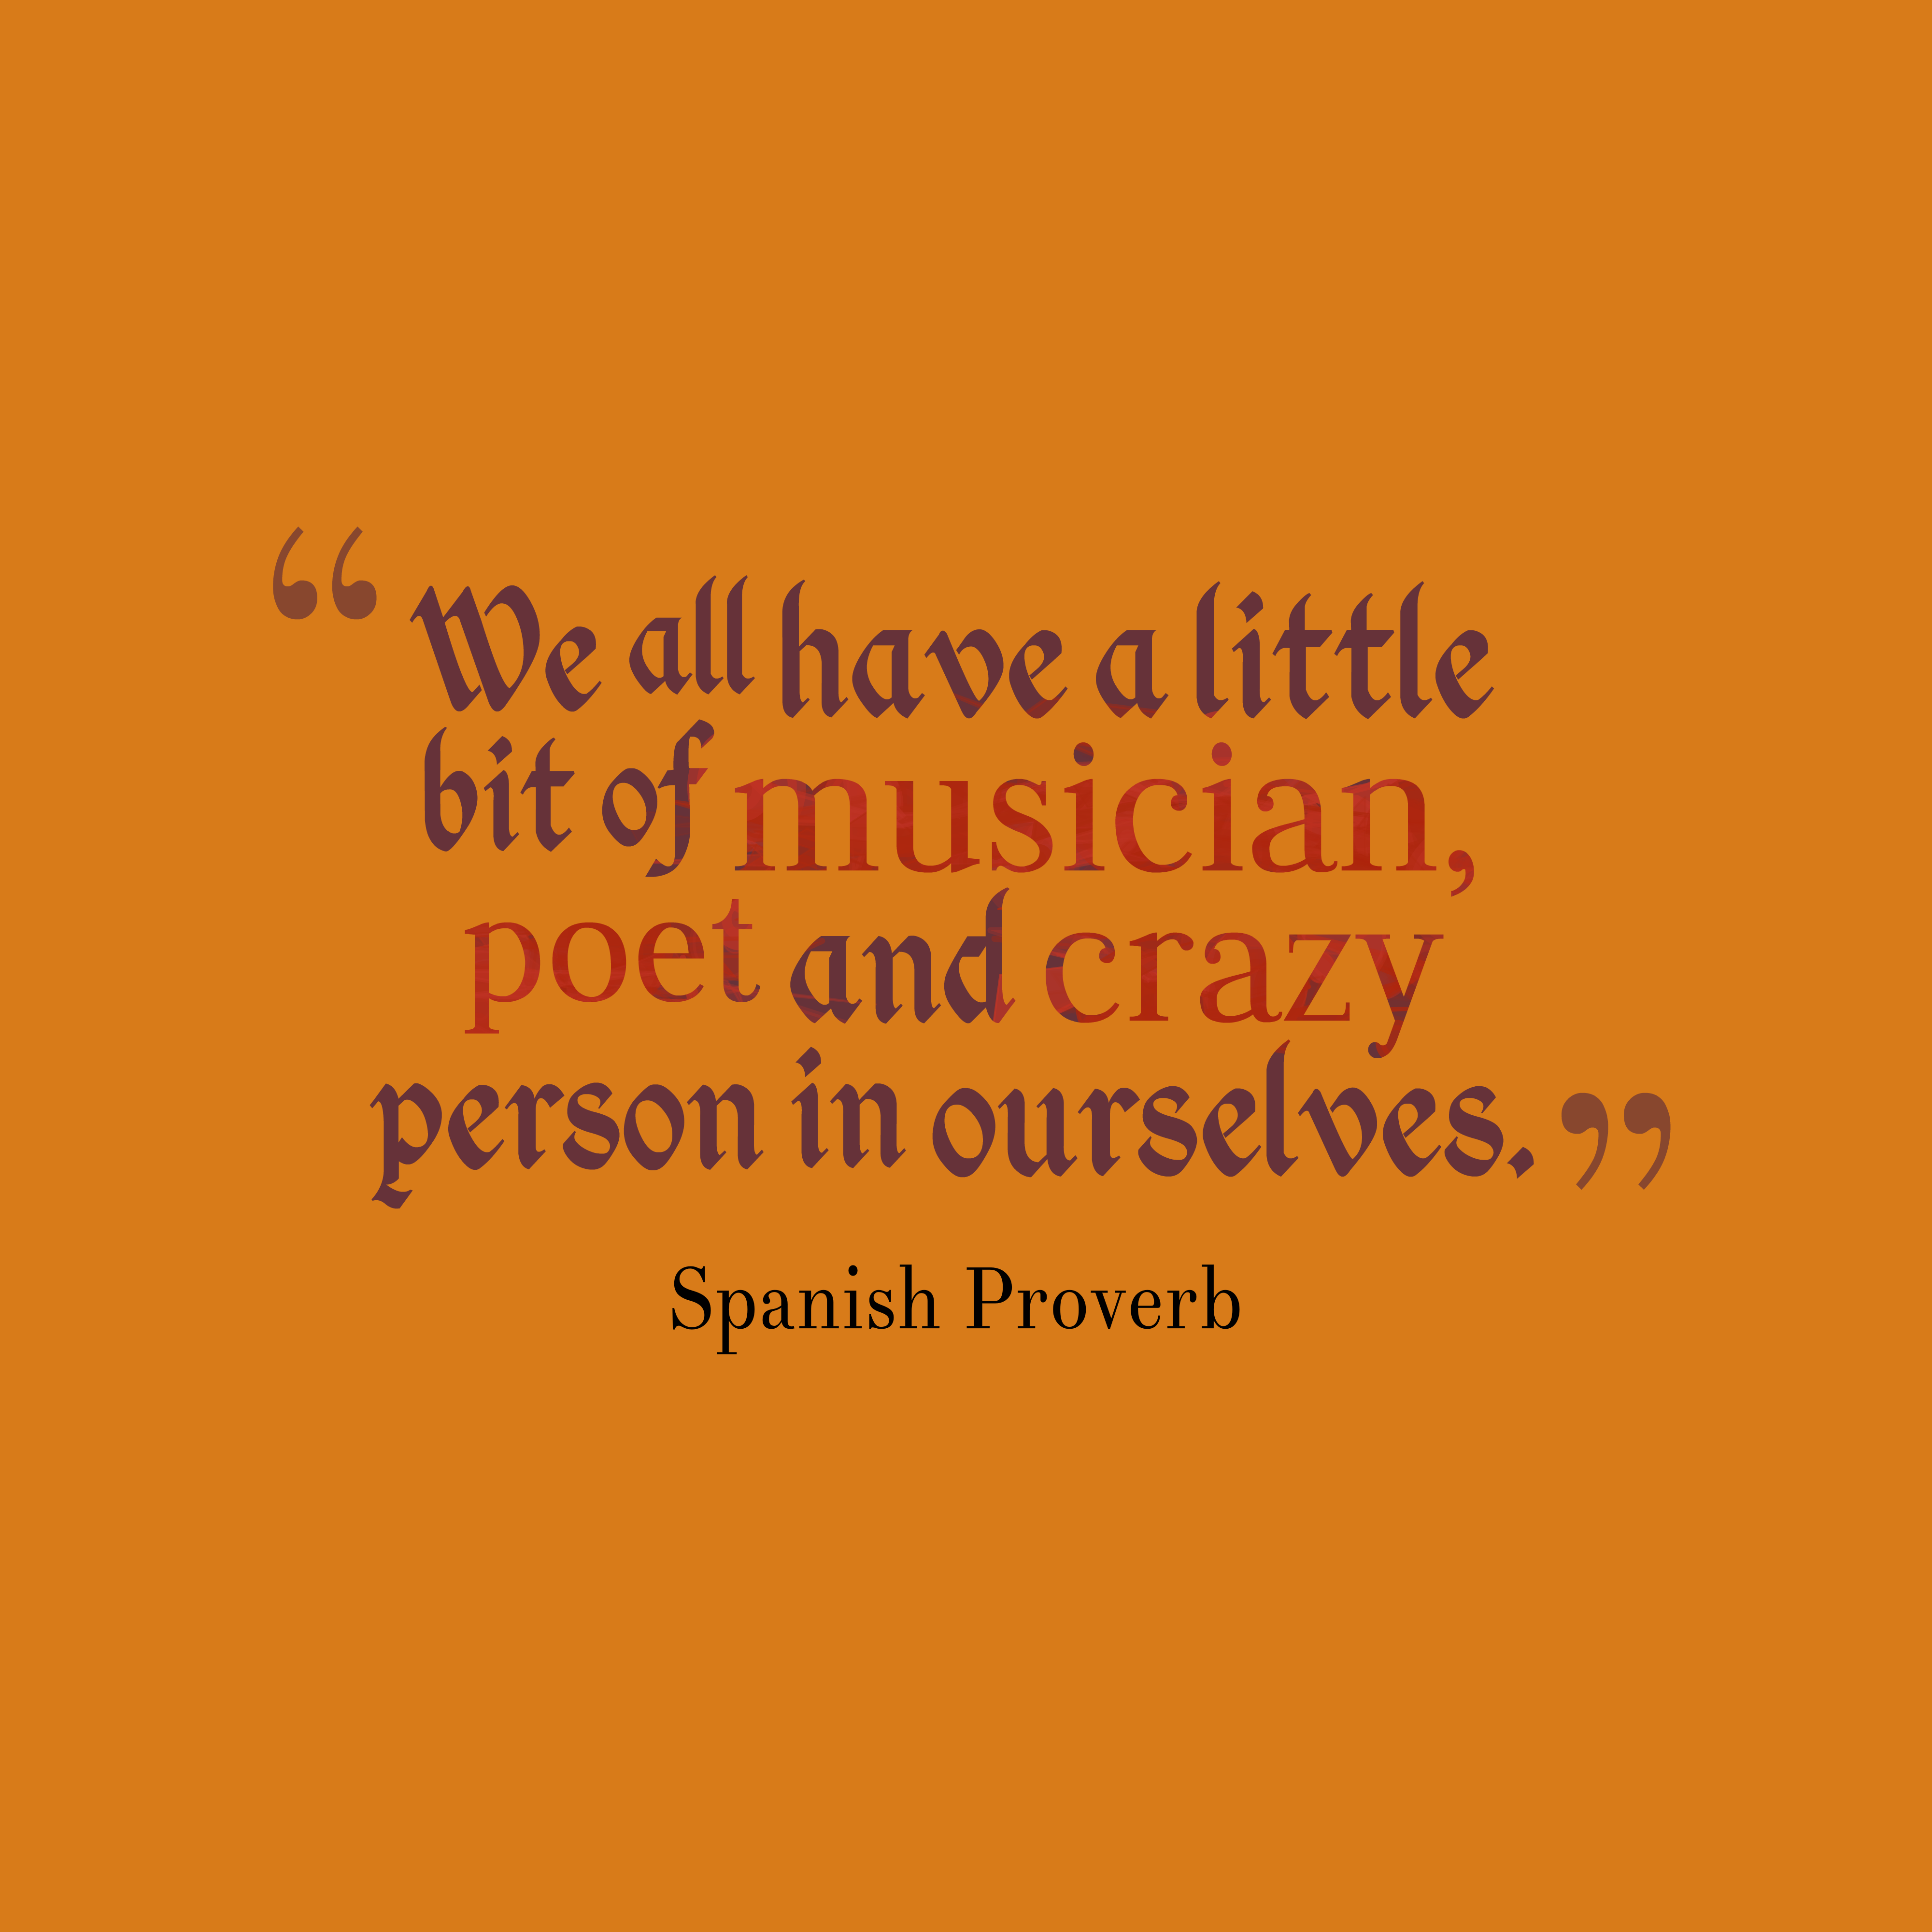 Quotes image of We all have a little bit of musician, poet and crazy person in ourselves.